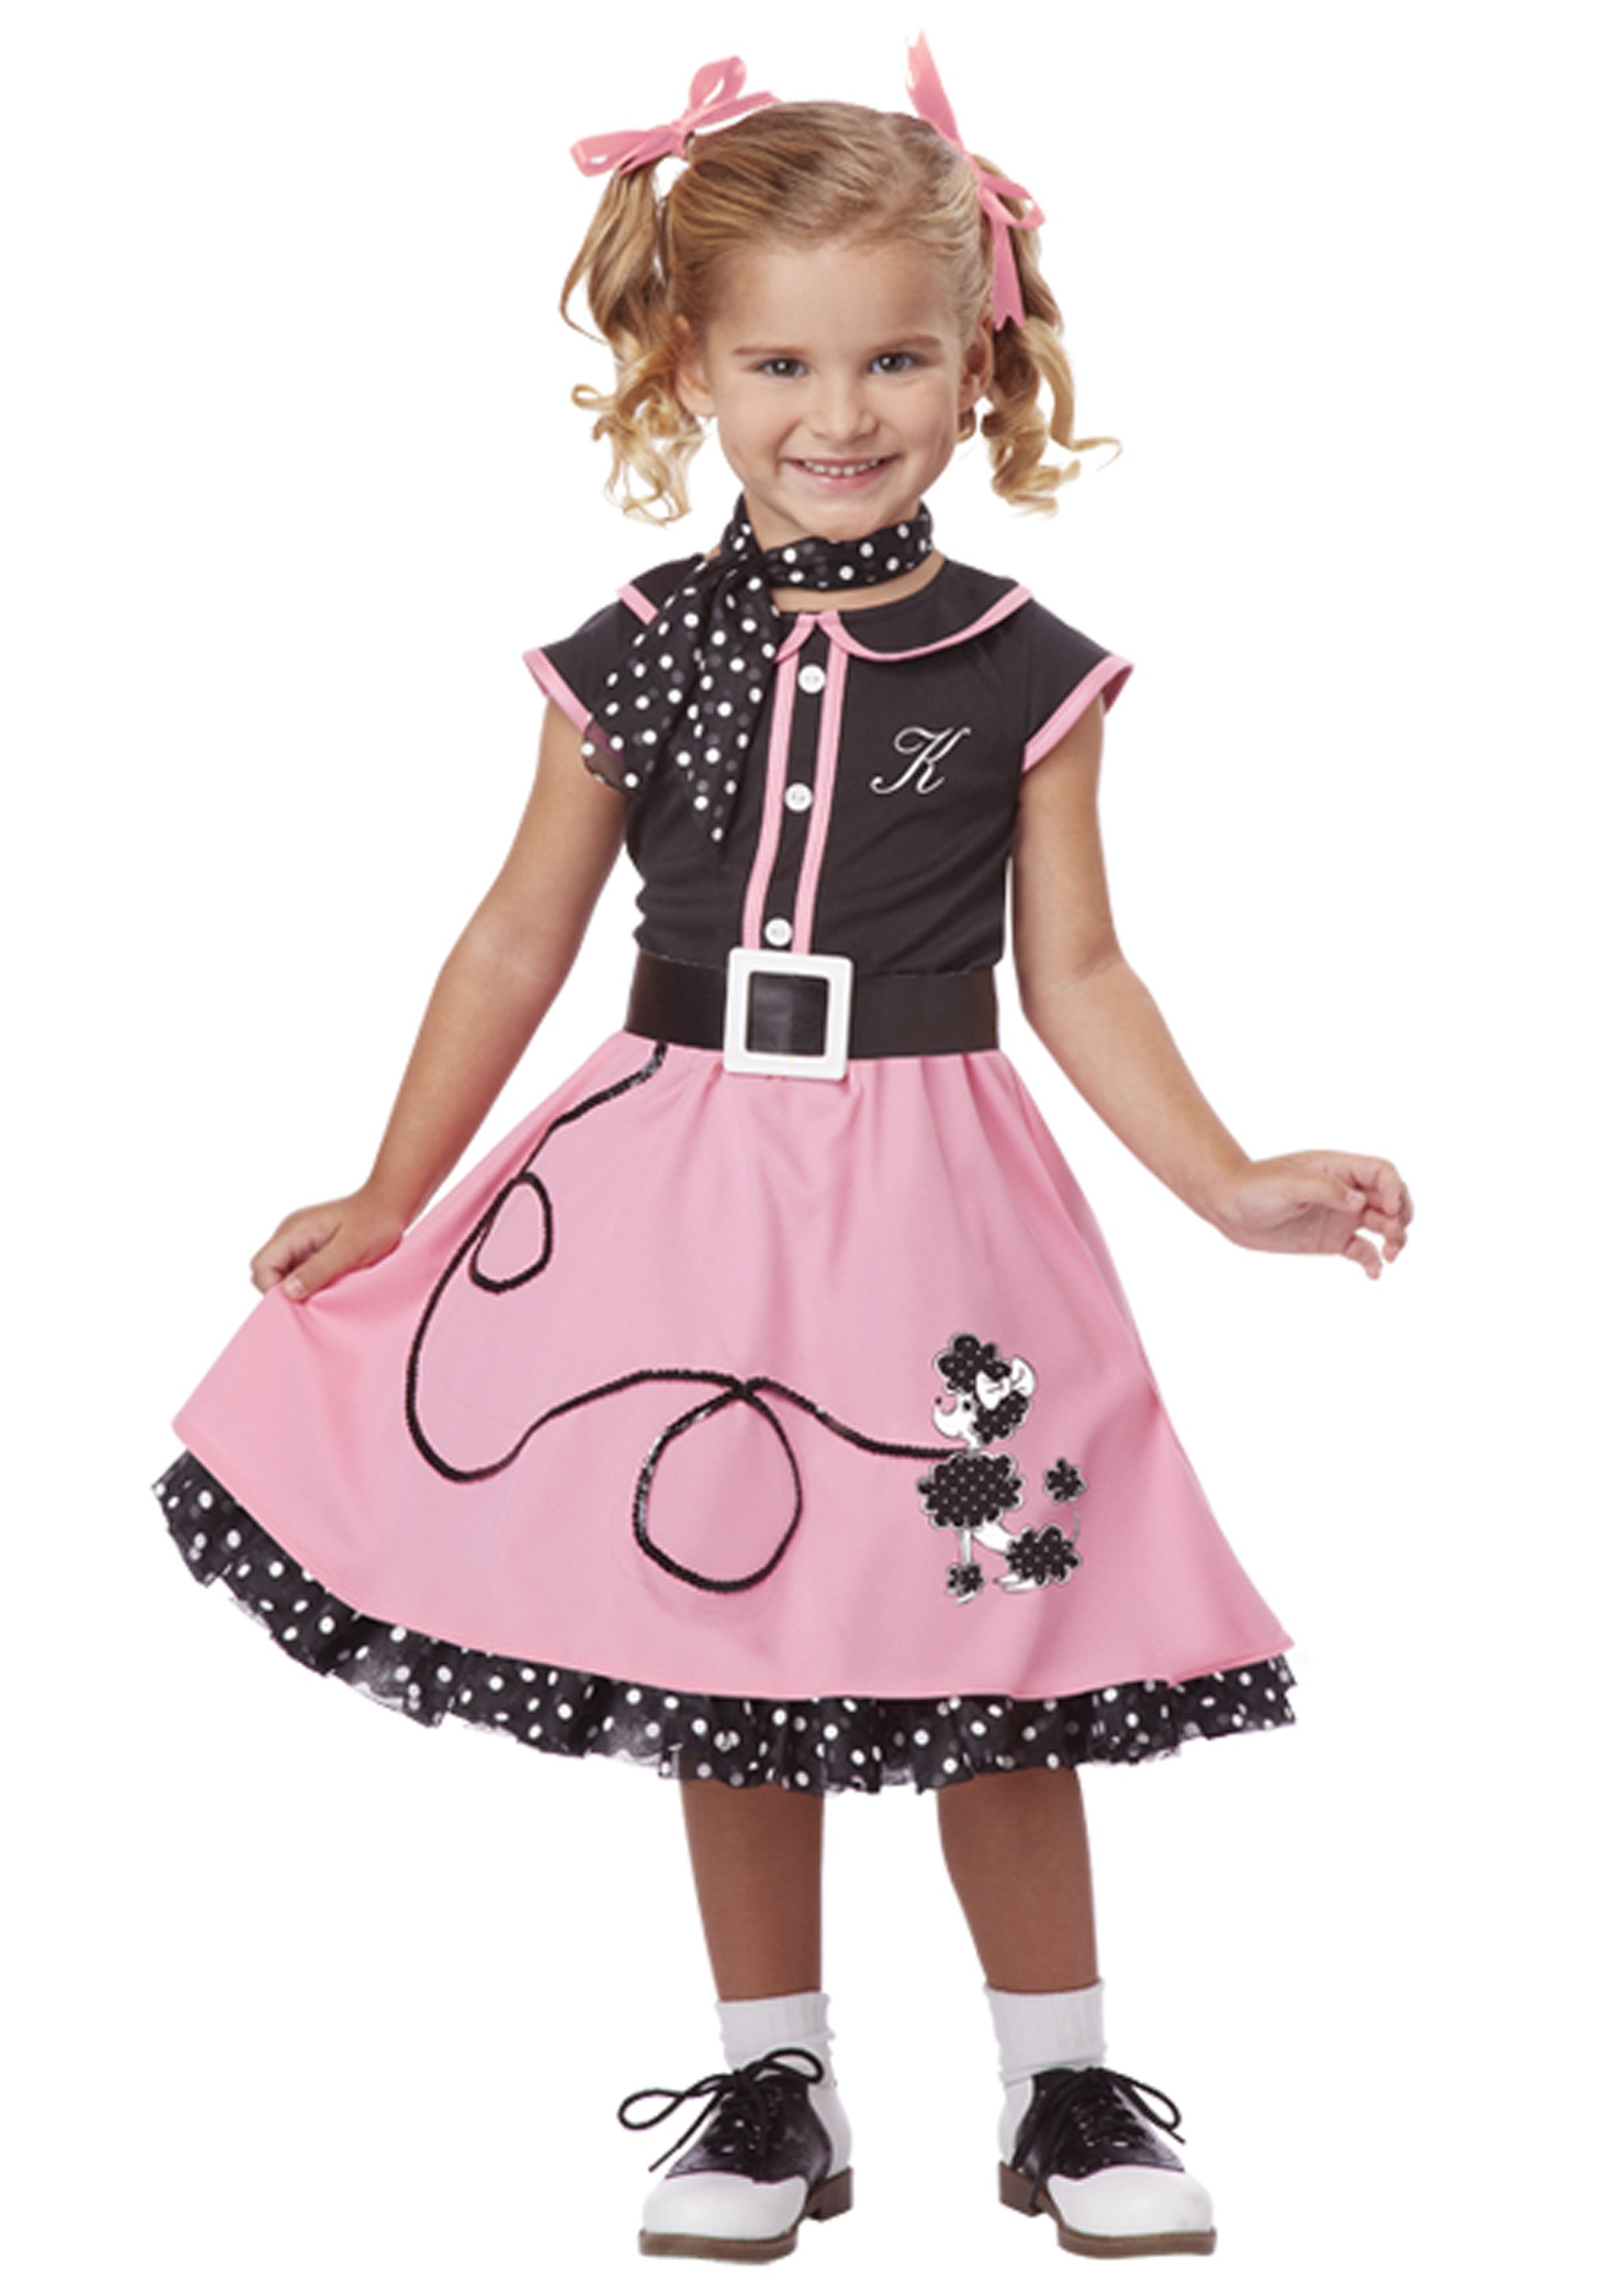 Poodle Dress Kids 1950s Costume Halloween Fancy Dress